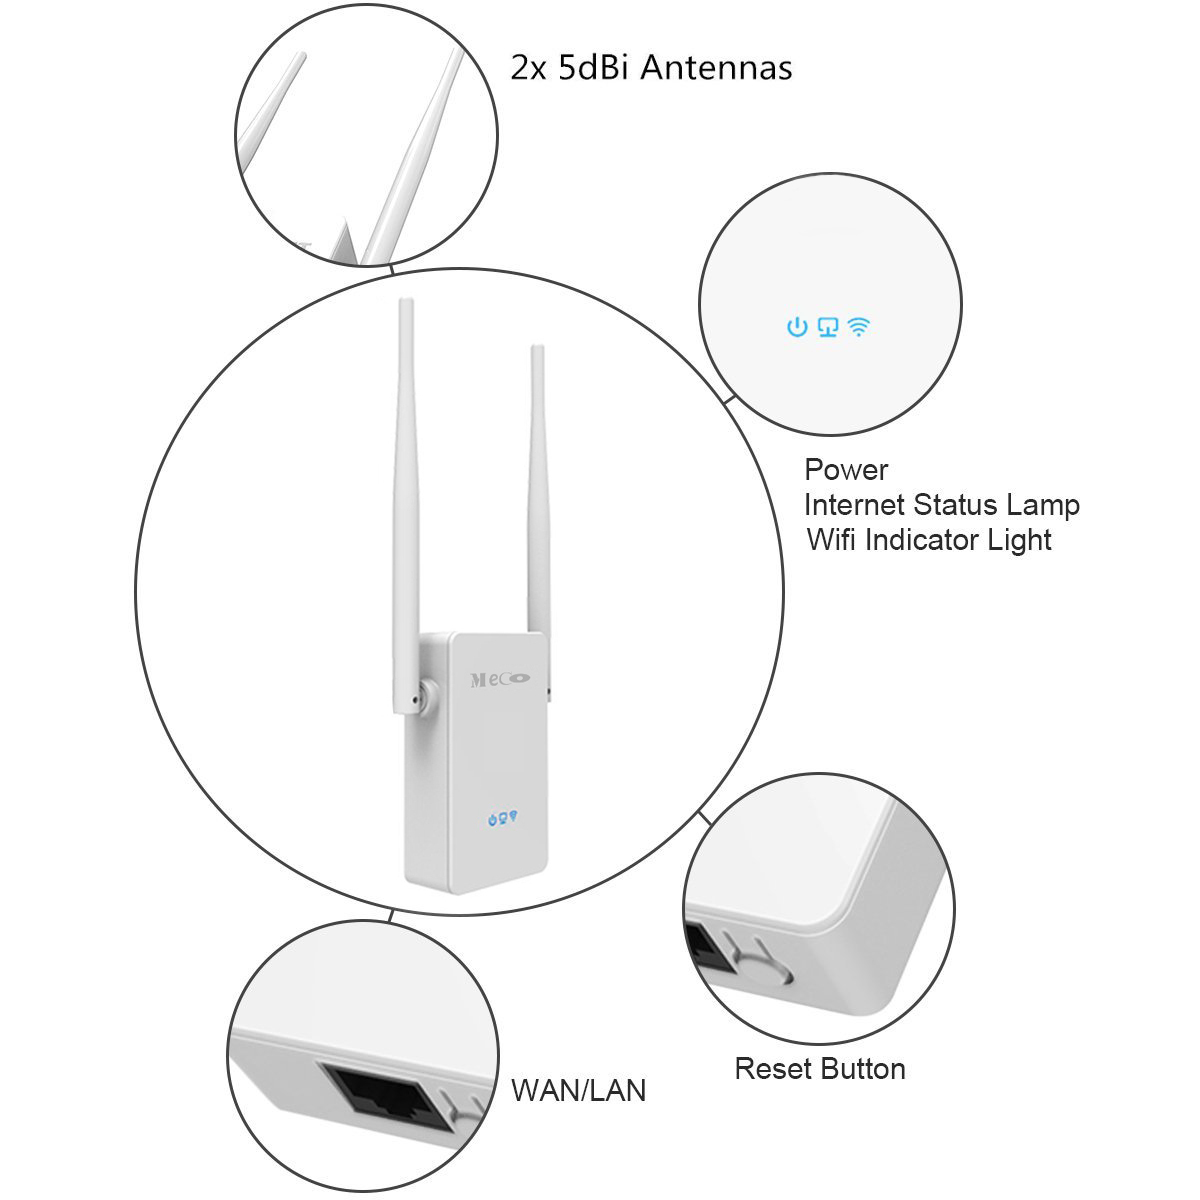 MECO 302S V2 300Mbps 2x 5dBi Antenna Wireless Wifi